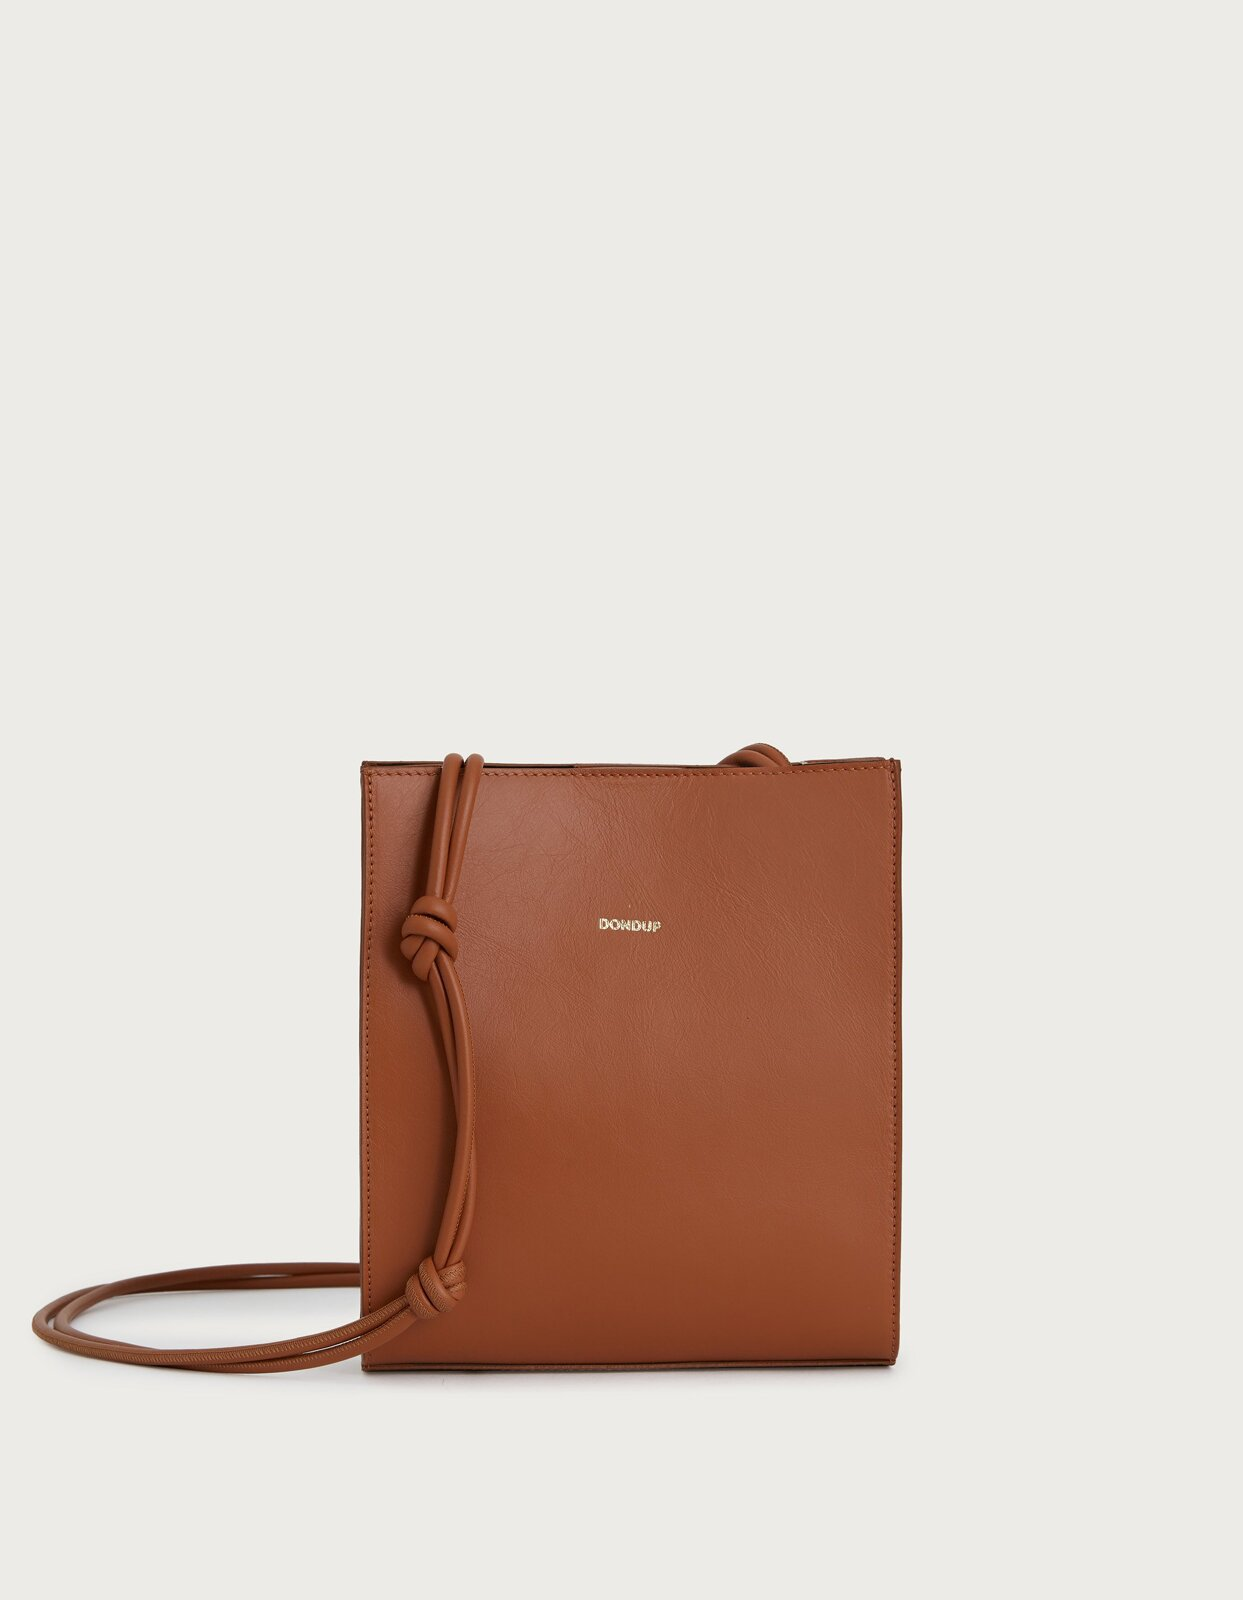 Bag with shoulder strap in nappa leather - Dondup